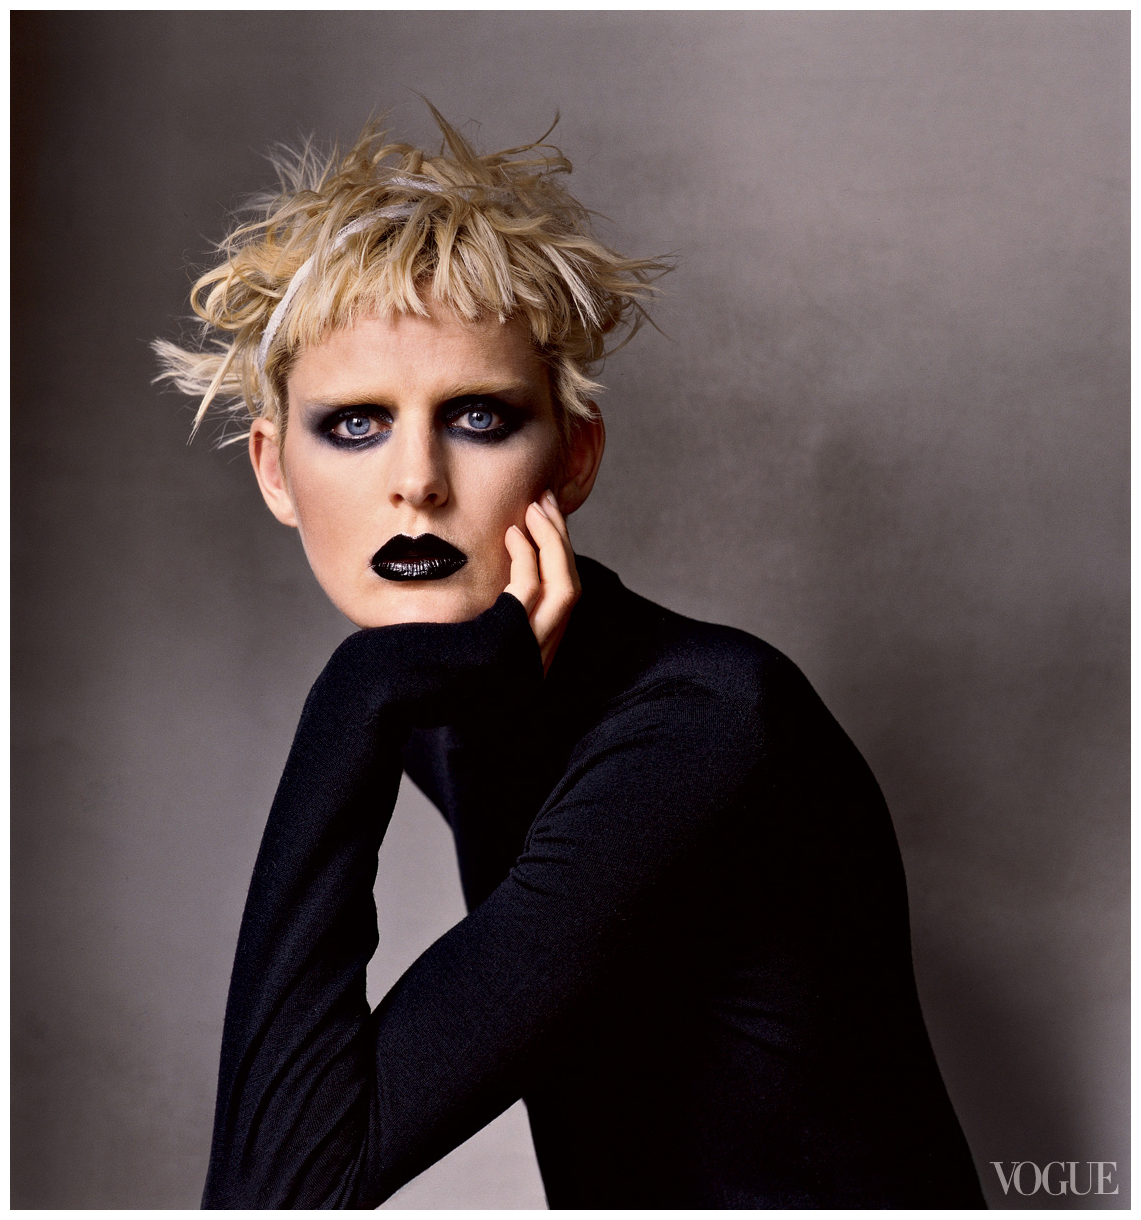 photographed-by-irving-penn-vogue-july-2006